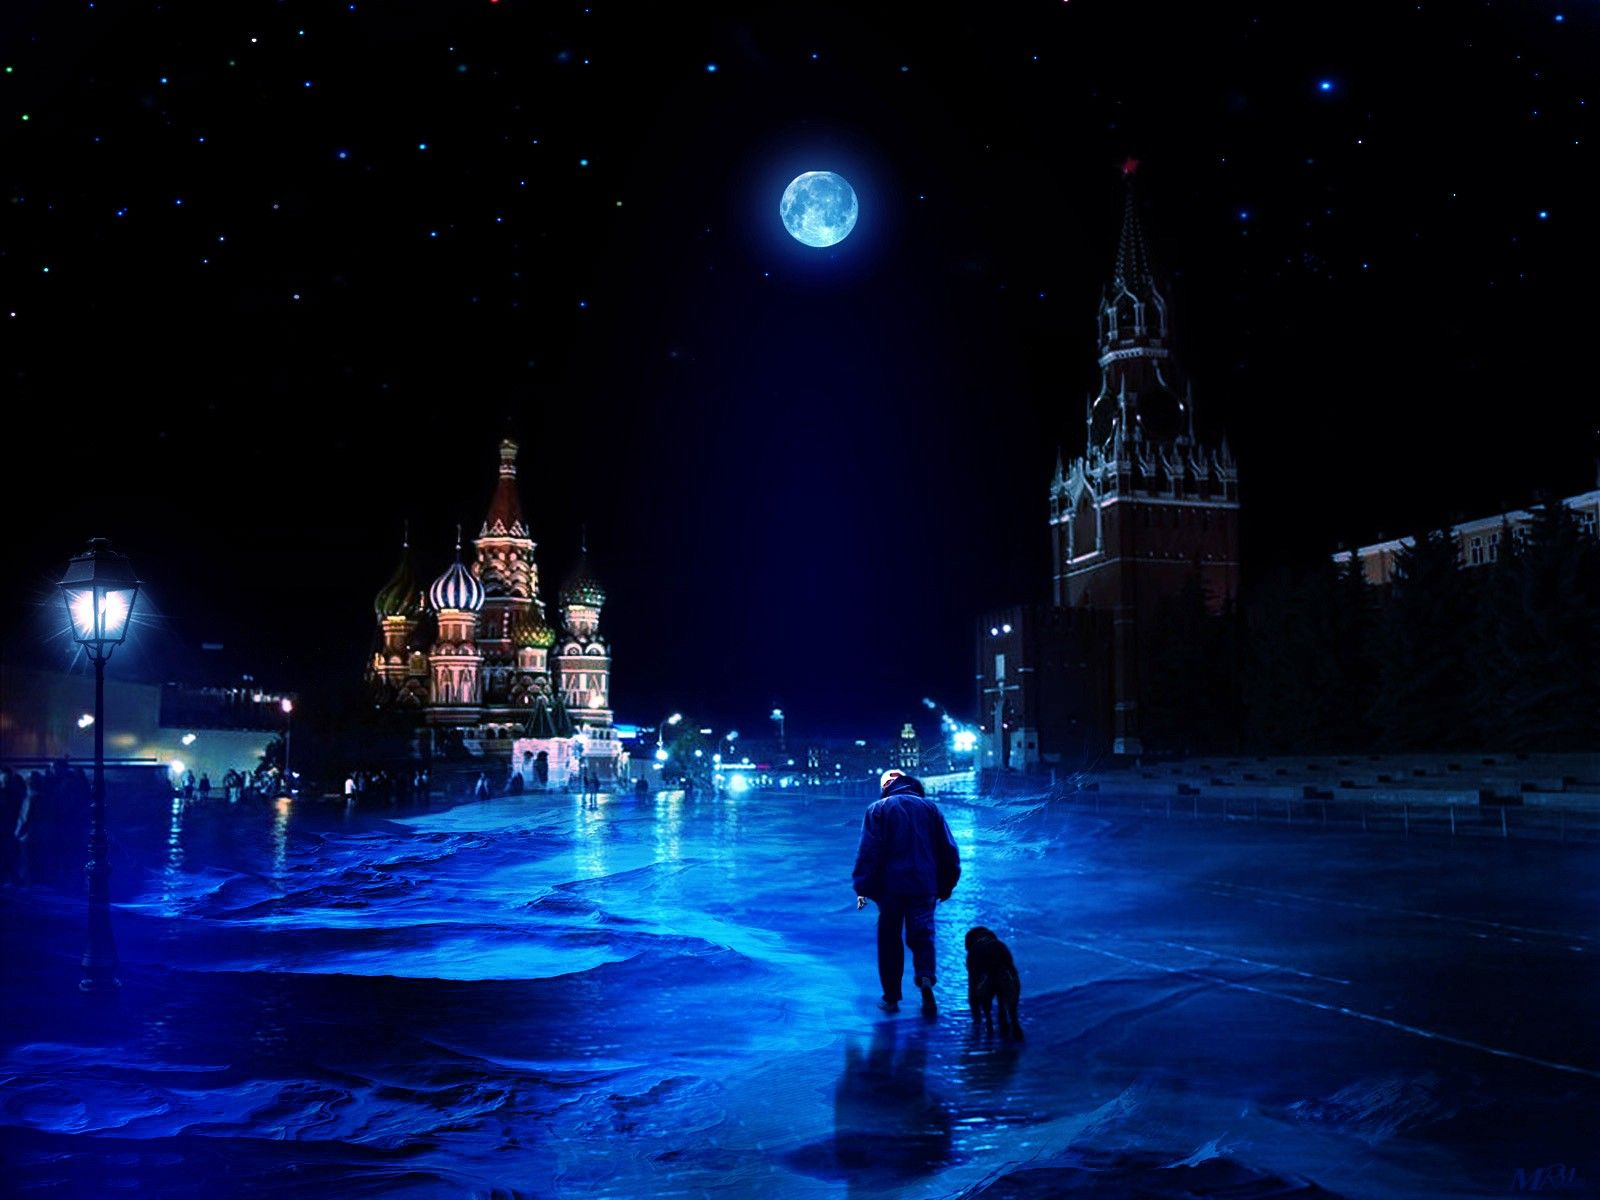 Night Life At Red Square Moscow Russia Wallpaper 32779 Night Life Russia Desktop Wallpaper